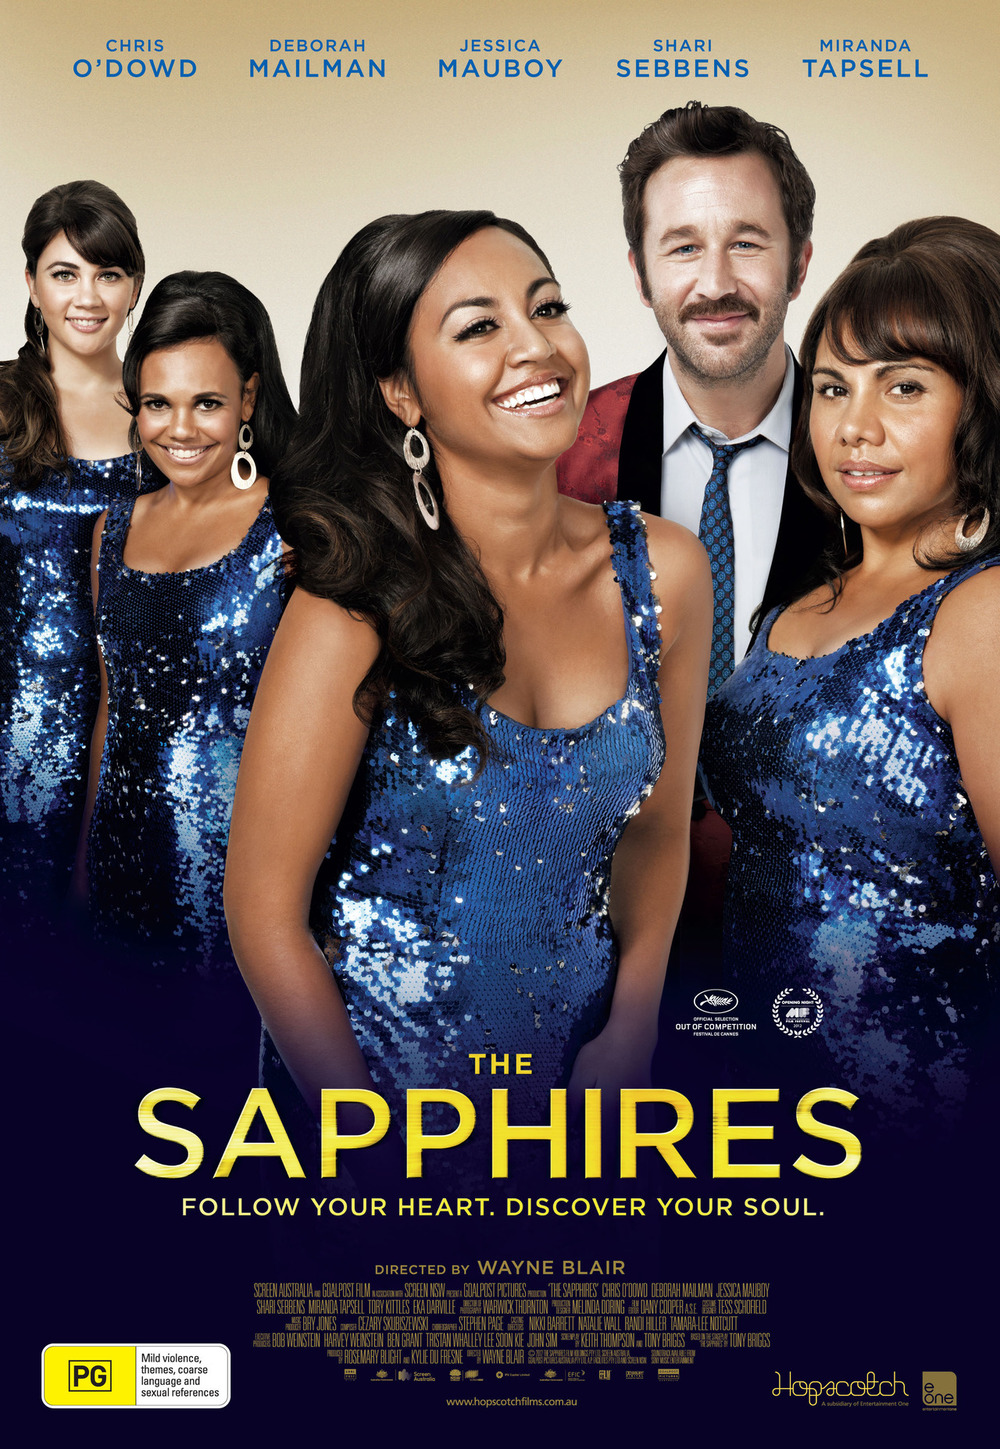 We can't wait for the release of the Sapphires, a film that Henry and Dan worked on a few months ago with Nikki Gooley, BAFTA award winning makeup artist and La Boutique family! The Sapphires is an inspirational tale set in the heady days of the late '60s about a quartet of young, talented singers from a remote Aboriginal mission, discovered and guided by a kind-hearted, soul-loving manager. Plucked from obscurity, the four spirited women with powerhouse voices - called The Sapphires - are given the opportunity to entertain American troops in Vietnam. Catapulted onto the world stage as Australia's answer to the Supremes, their journey of discovery offers them not only the chance to show off their musical skills, but find love and togetherness, experience loss and grow as women.